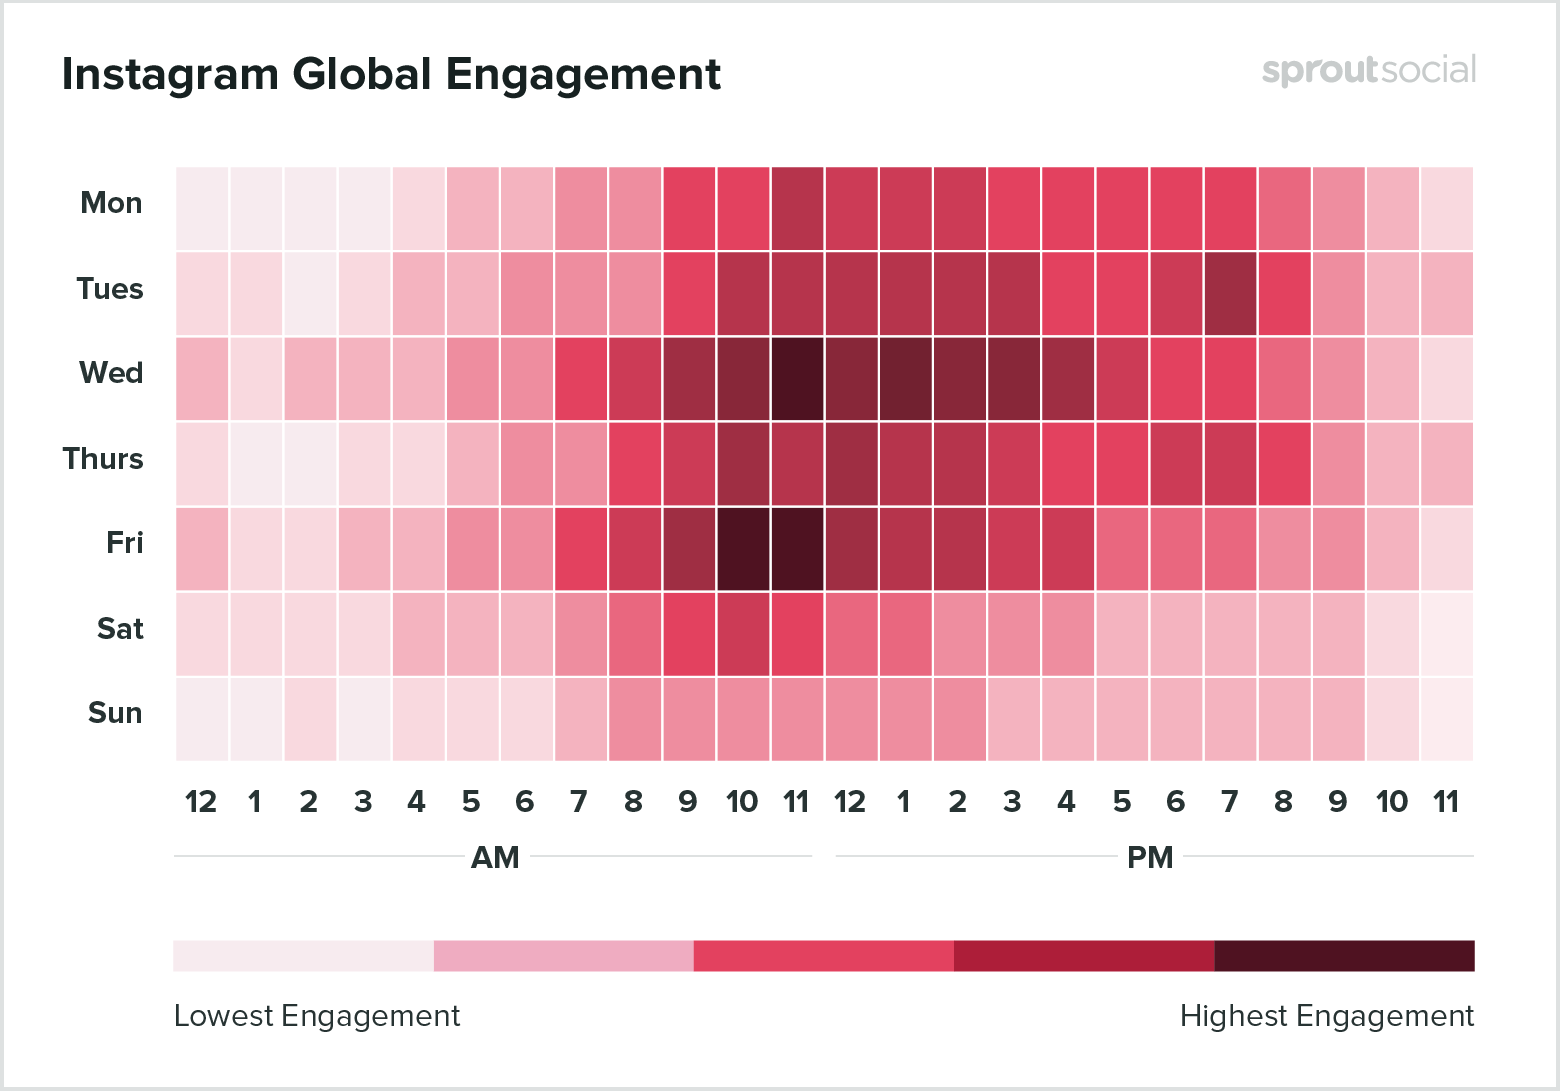 Heat map showing the best times to post on Instagram based on global engagement